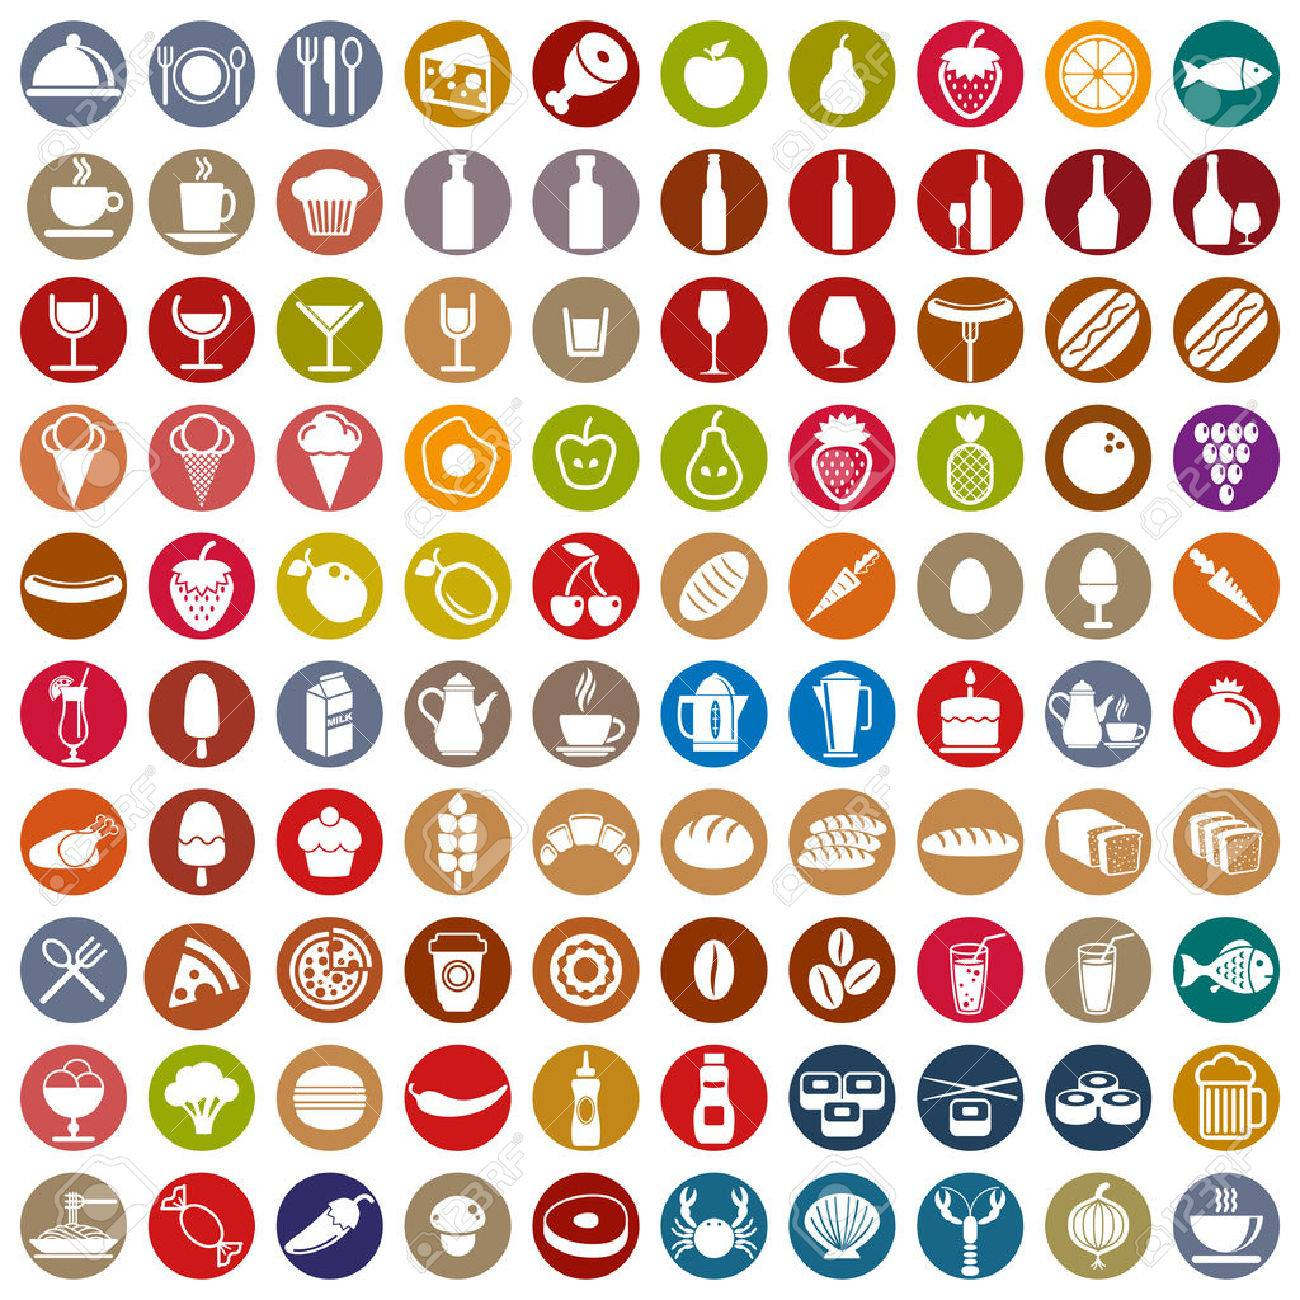 100 food and drink icons set, color vectors collection. Stock Vector - 30275668